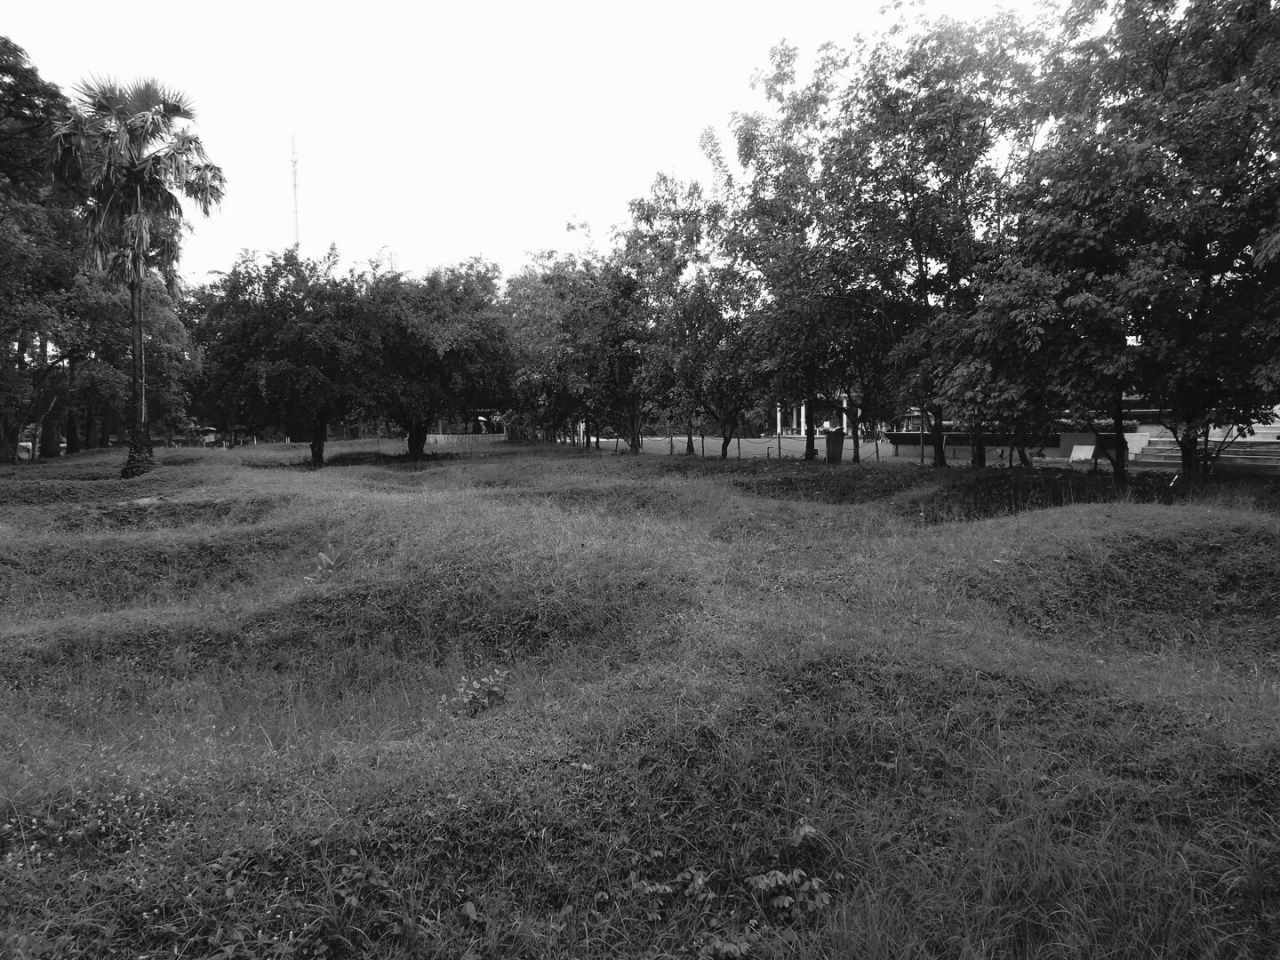 Choeung Ek, The Killing Fields, Phnom Penh, Cambodia